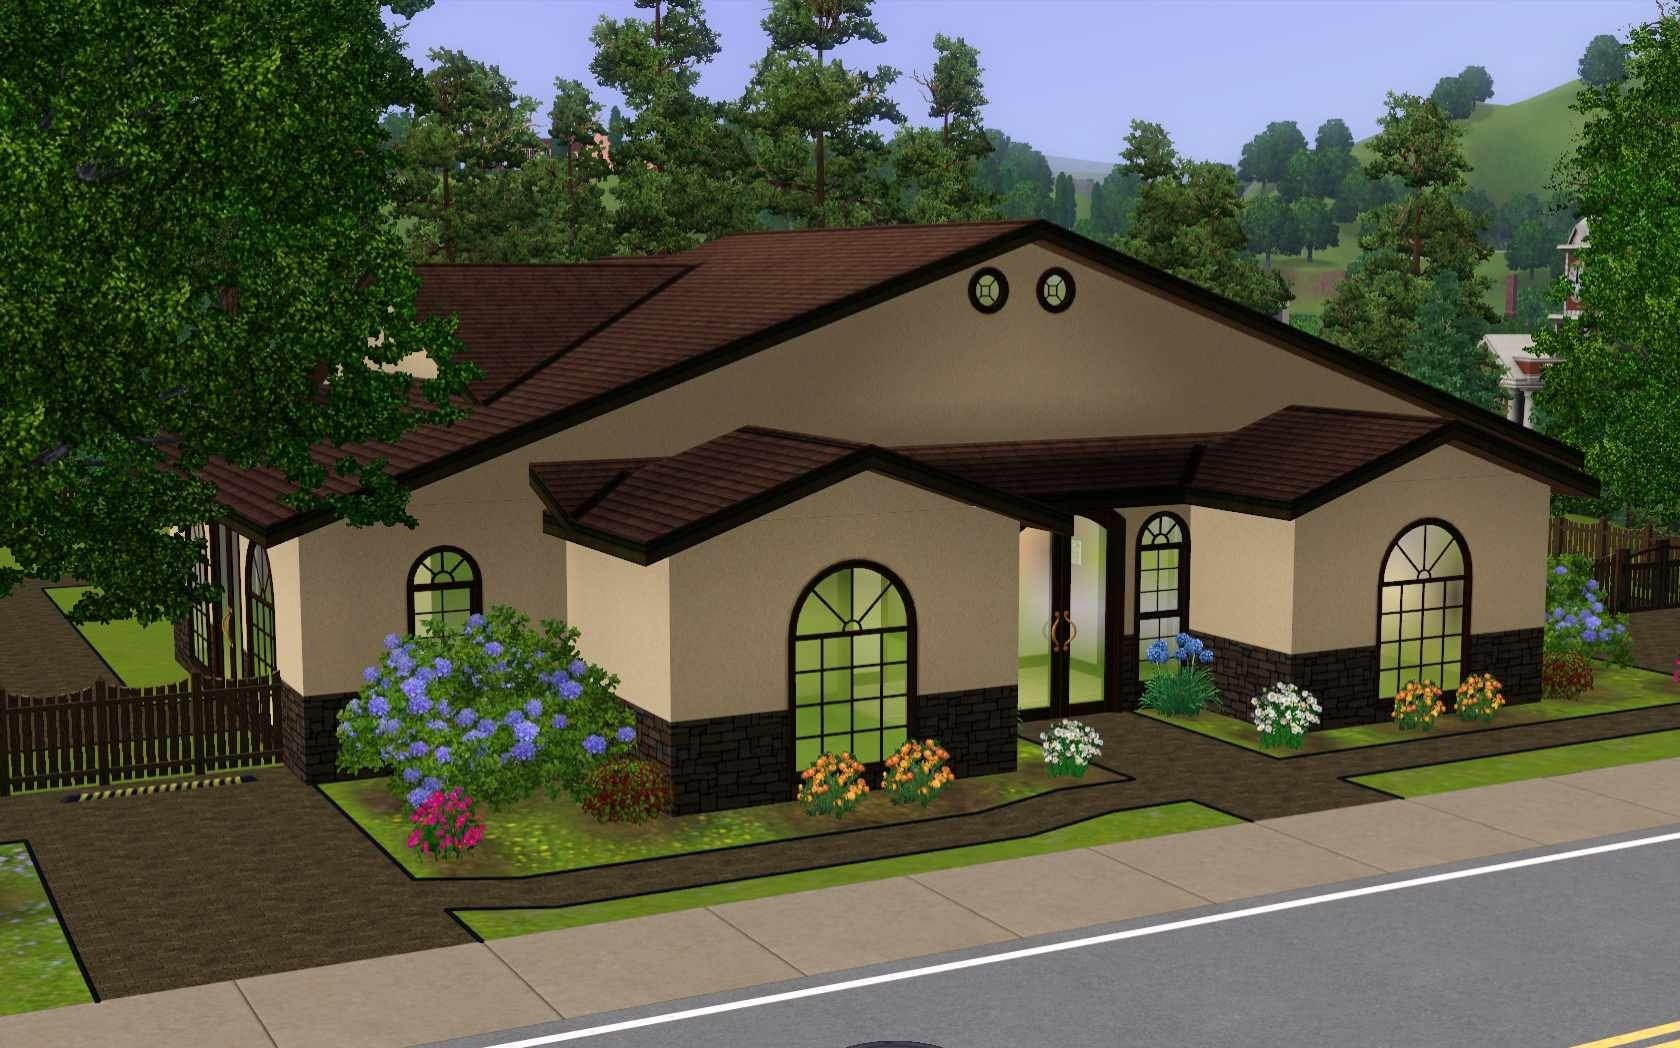 10 Stylish House Ideas For Sims 3 the sims 3 room build ideas and examples 7 2021